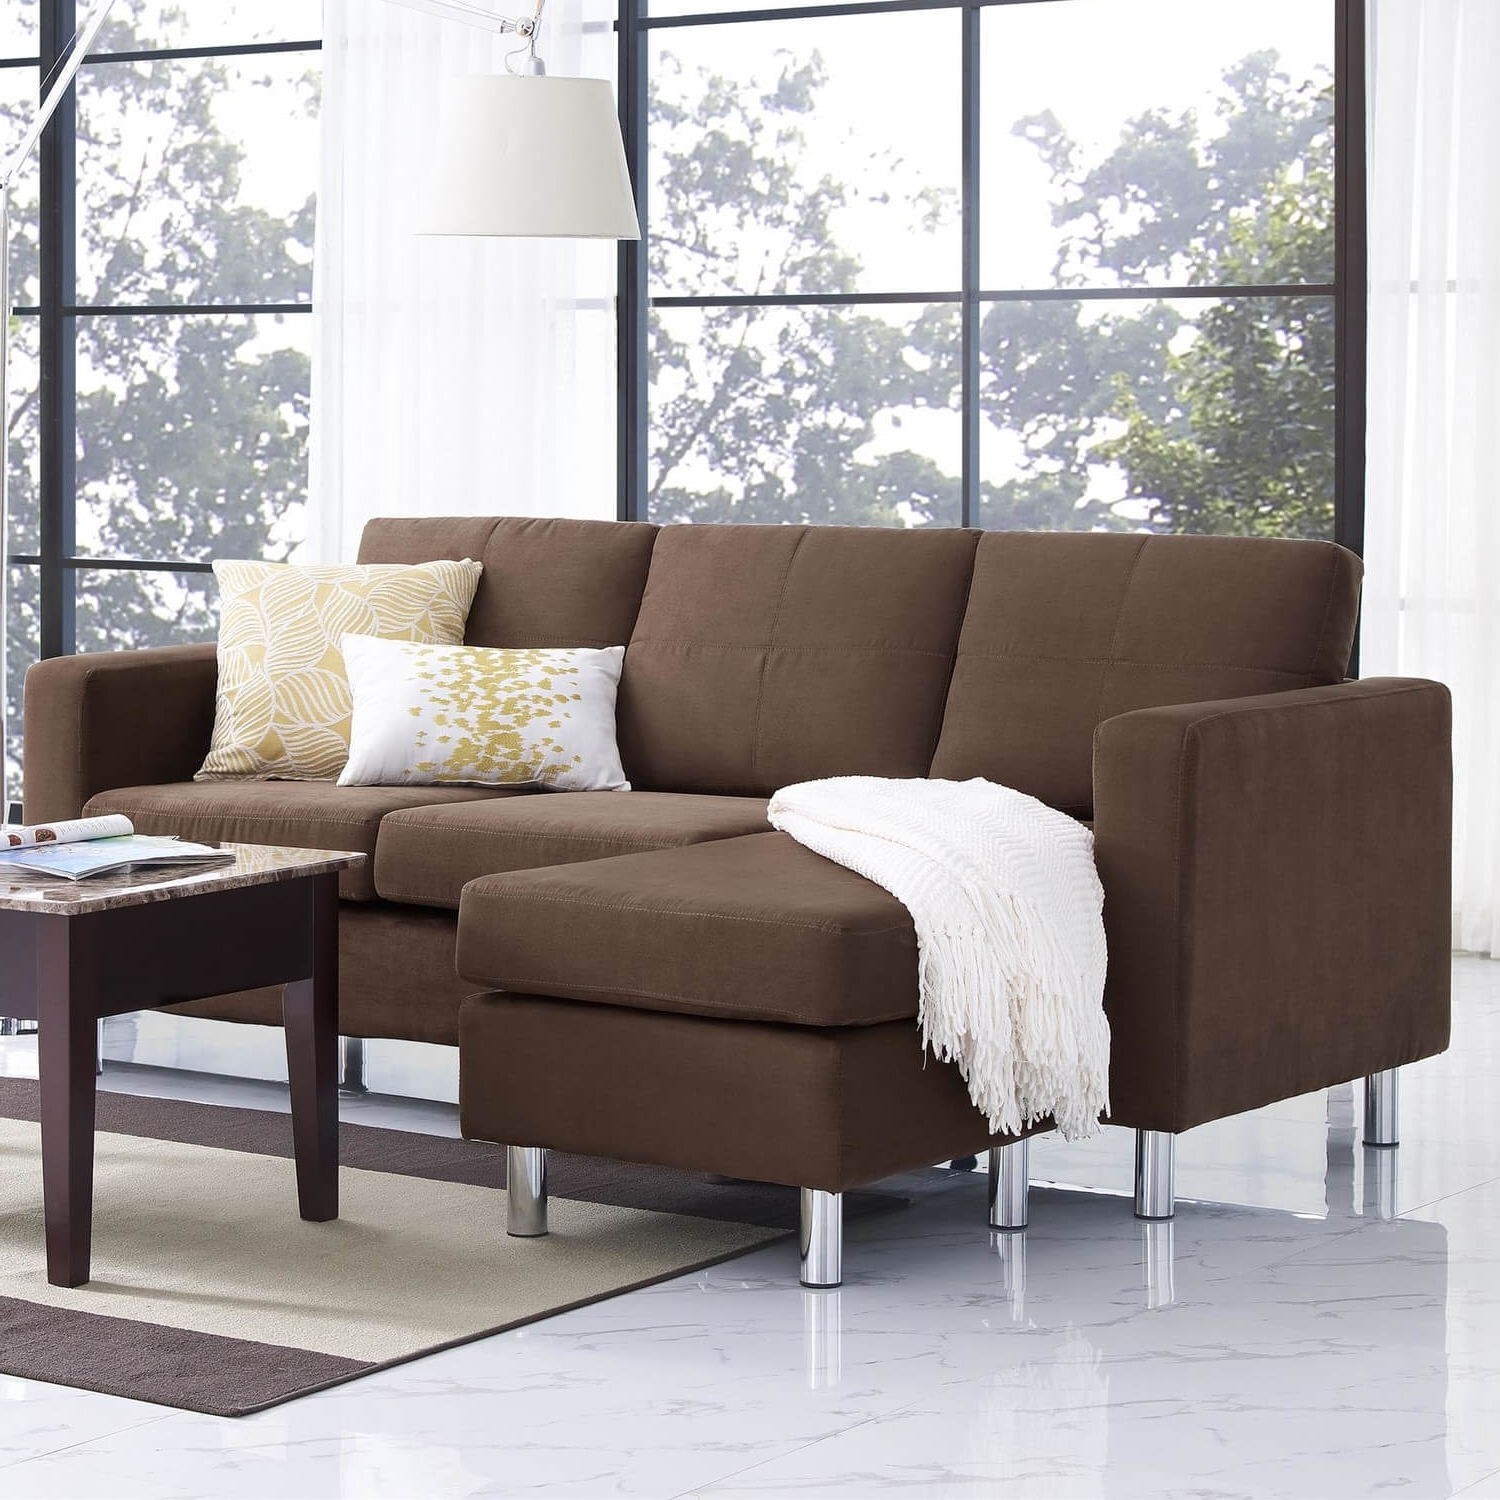 Photo Gallery of Sectional Sofas At Charlotte Nc (Showing 9 ...